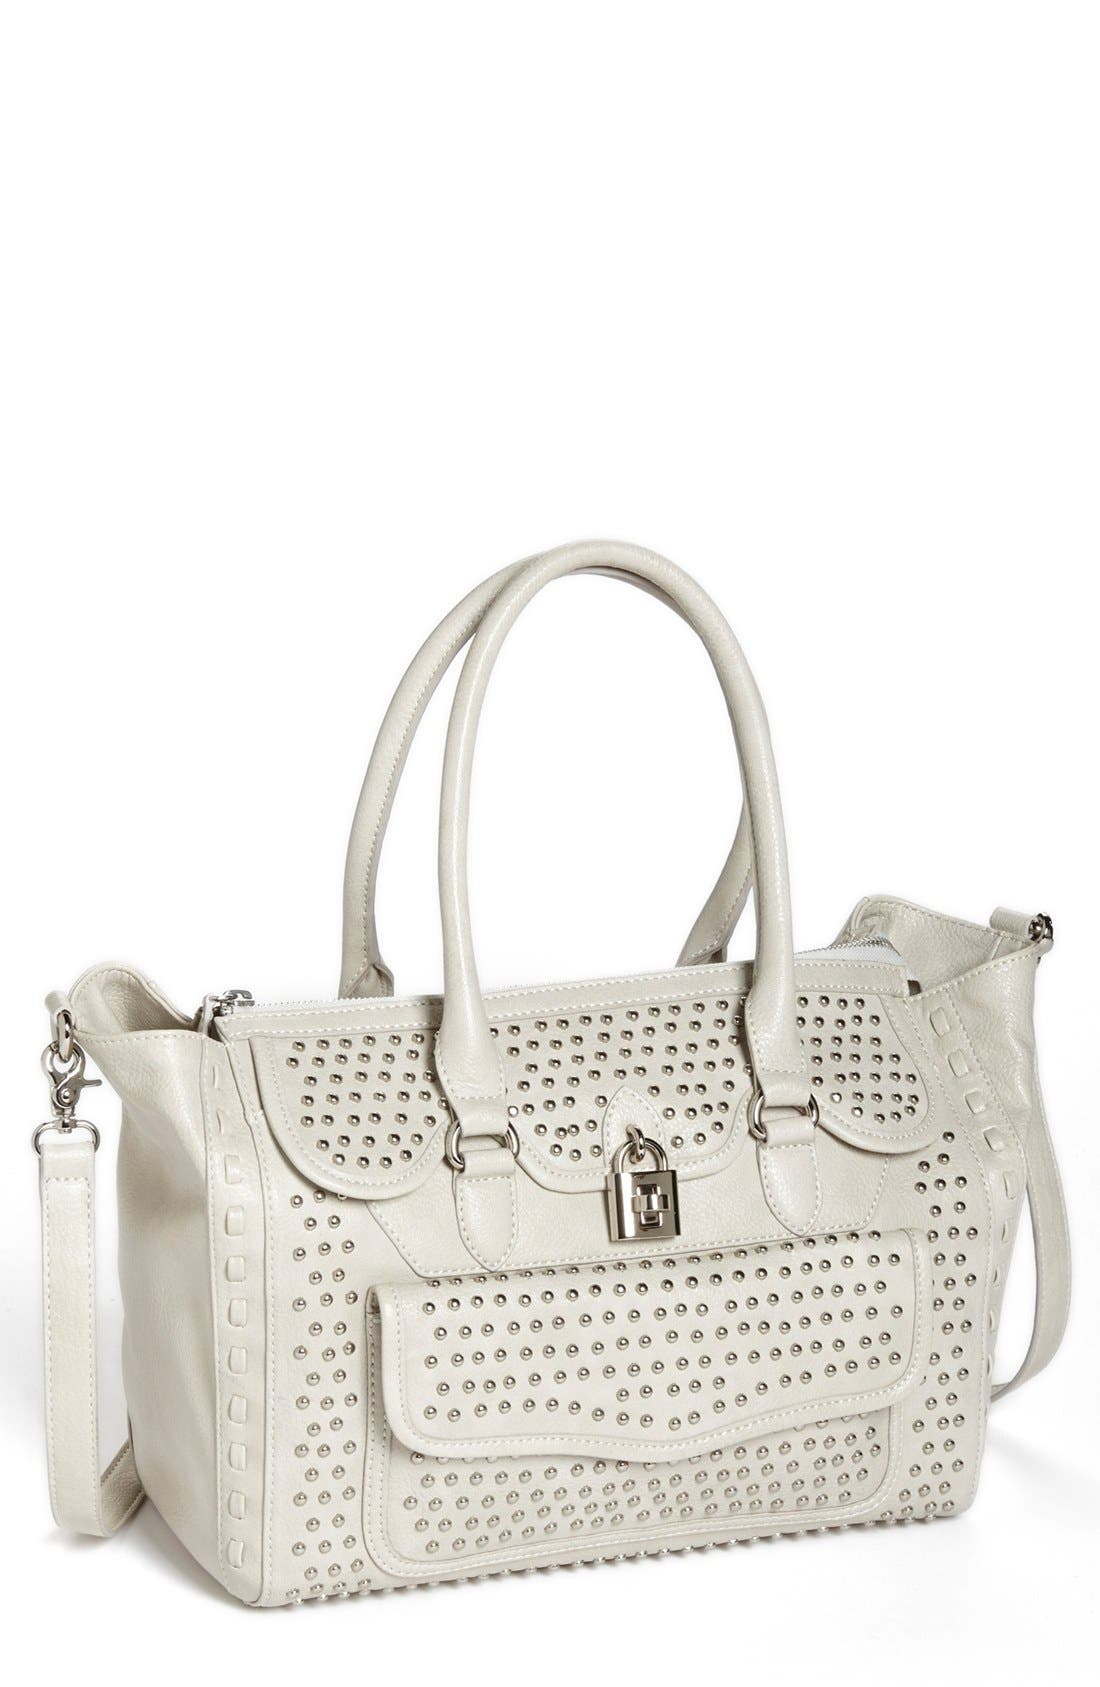 Main Image - Jessica Simpson 'Madison' Pebble Studded Faux Leather Satchel